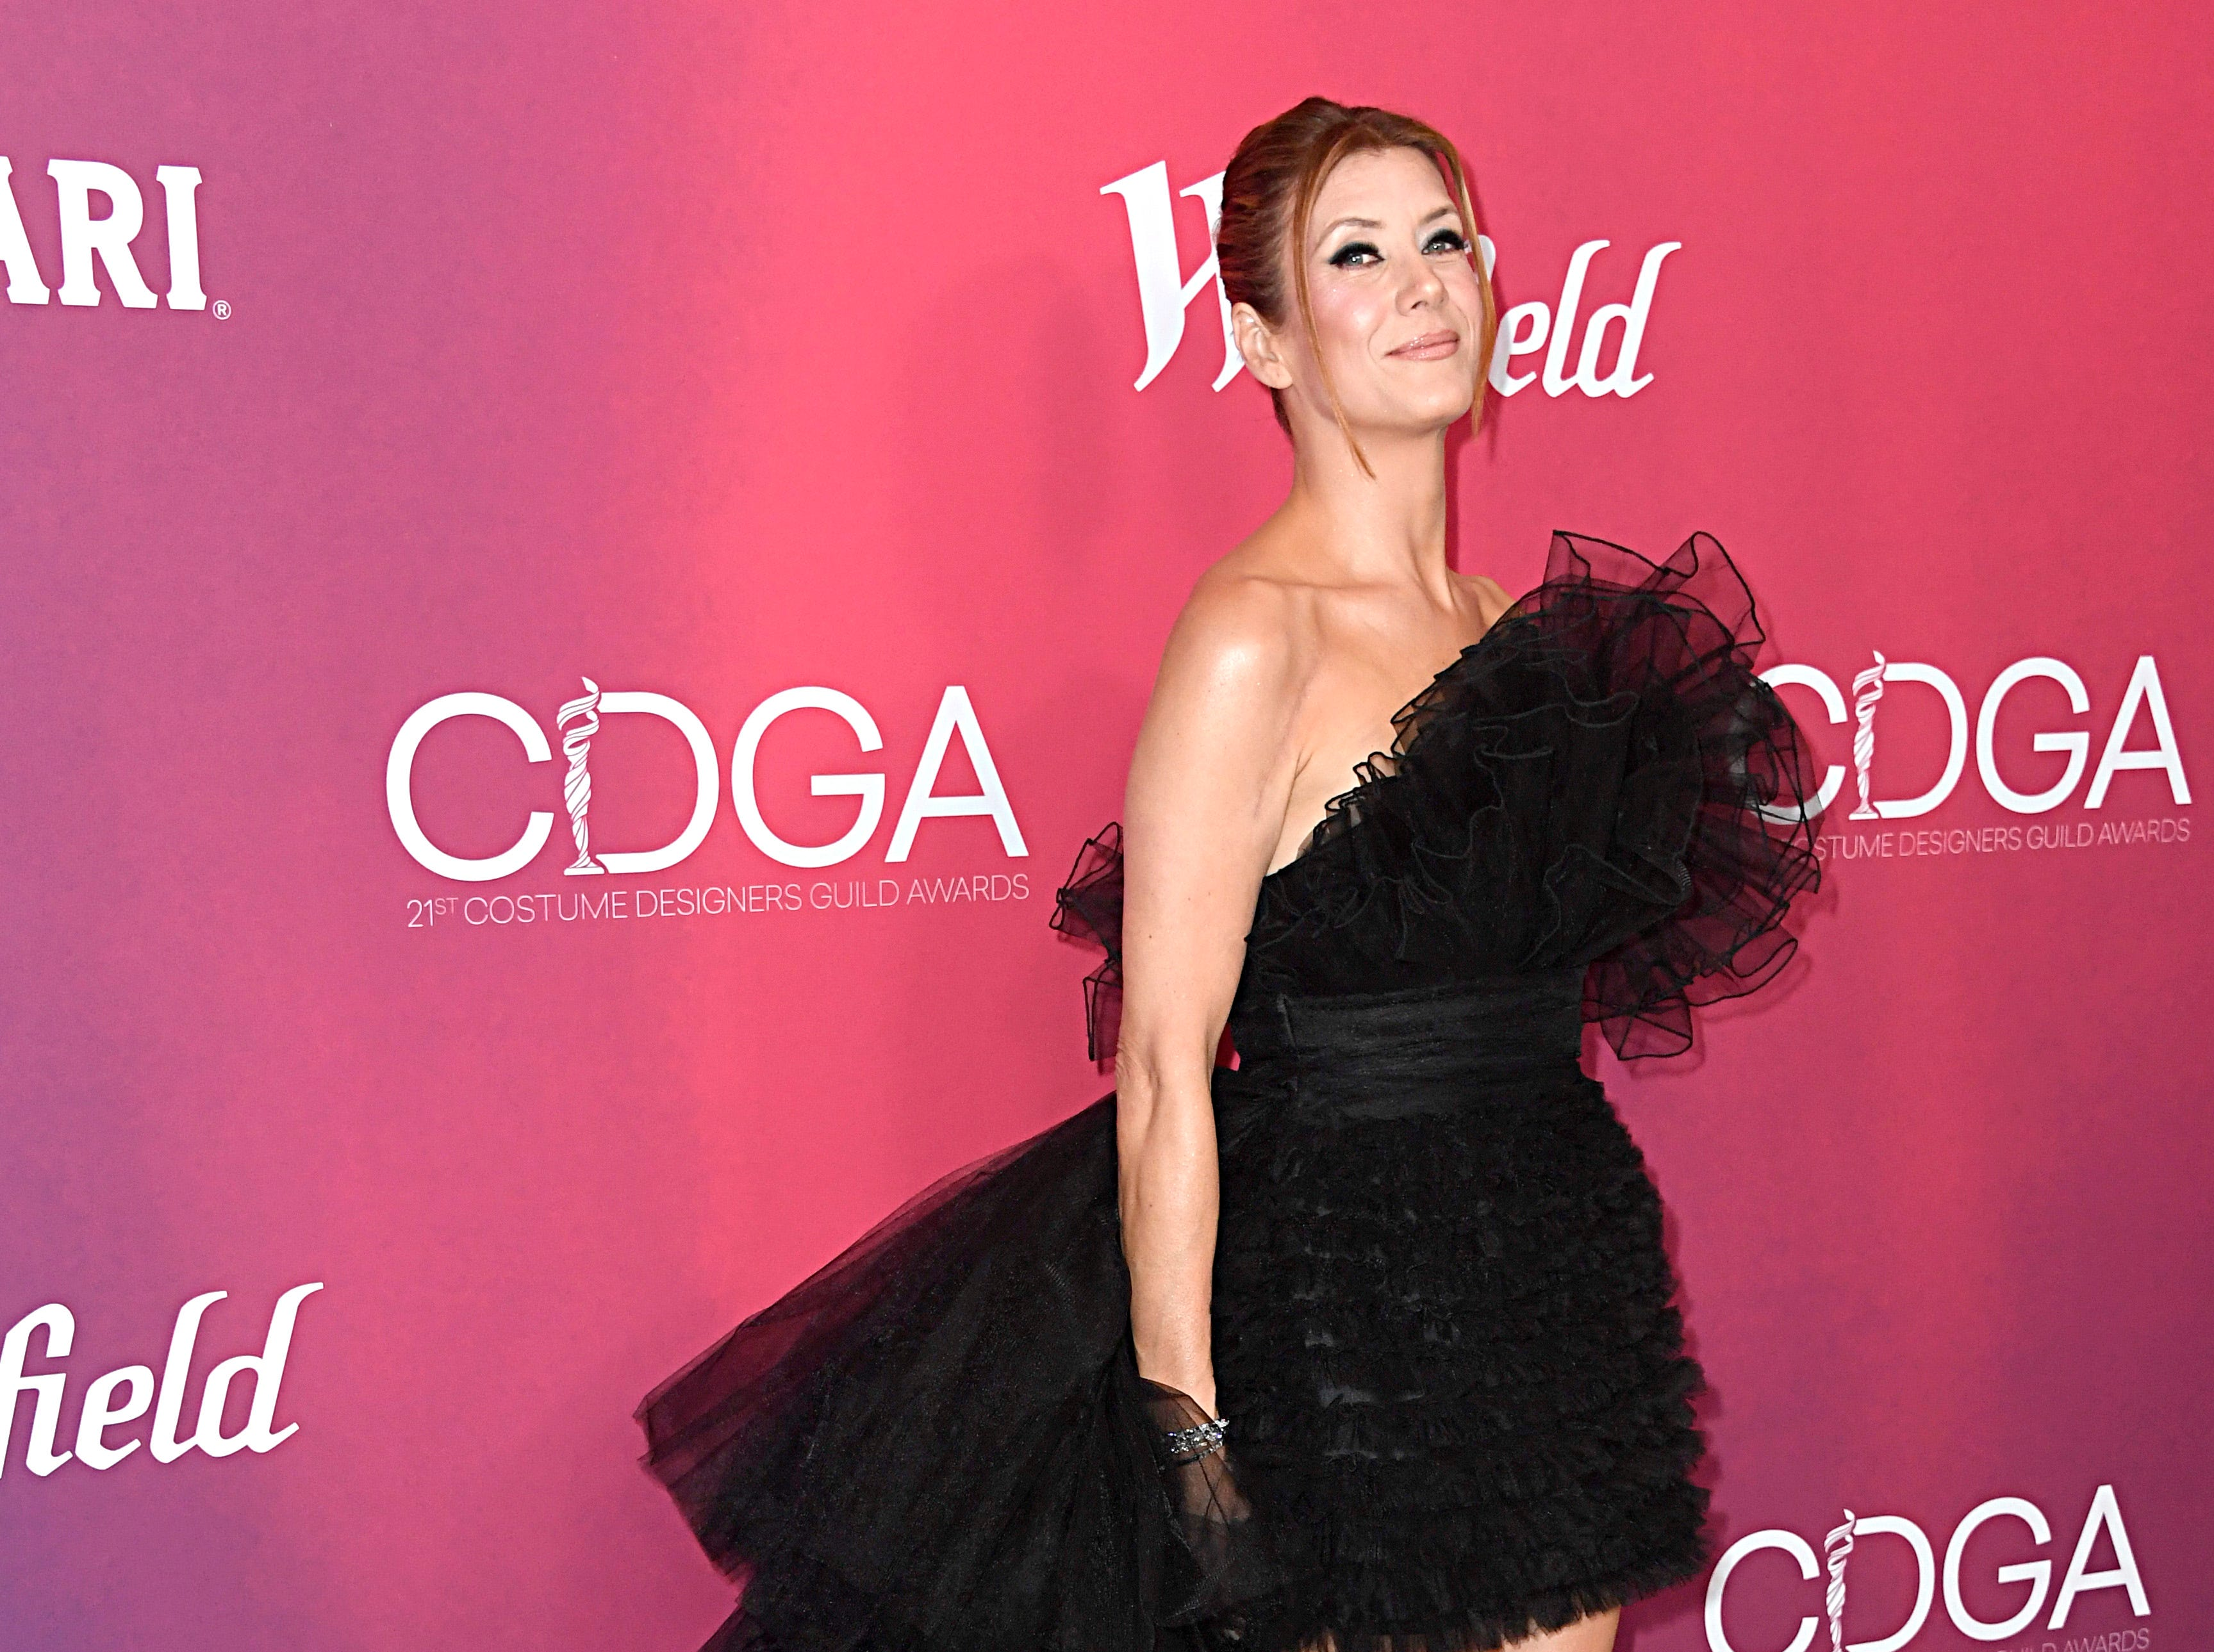 BEVERLY HILLS, CALIFORNIA - FEBRUARY 19: Kate Walsh attends The 21st CDGA (Costume Designers Guild Awards) at The Beverly Hilton Hotel on February 19, 2019 in Beverly Hills, California. (Photo by Frazer Harrison/Getty Images) ORG XMIT: 775282683 ORIG FILE ID: 1130831988